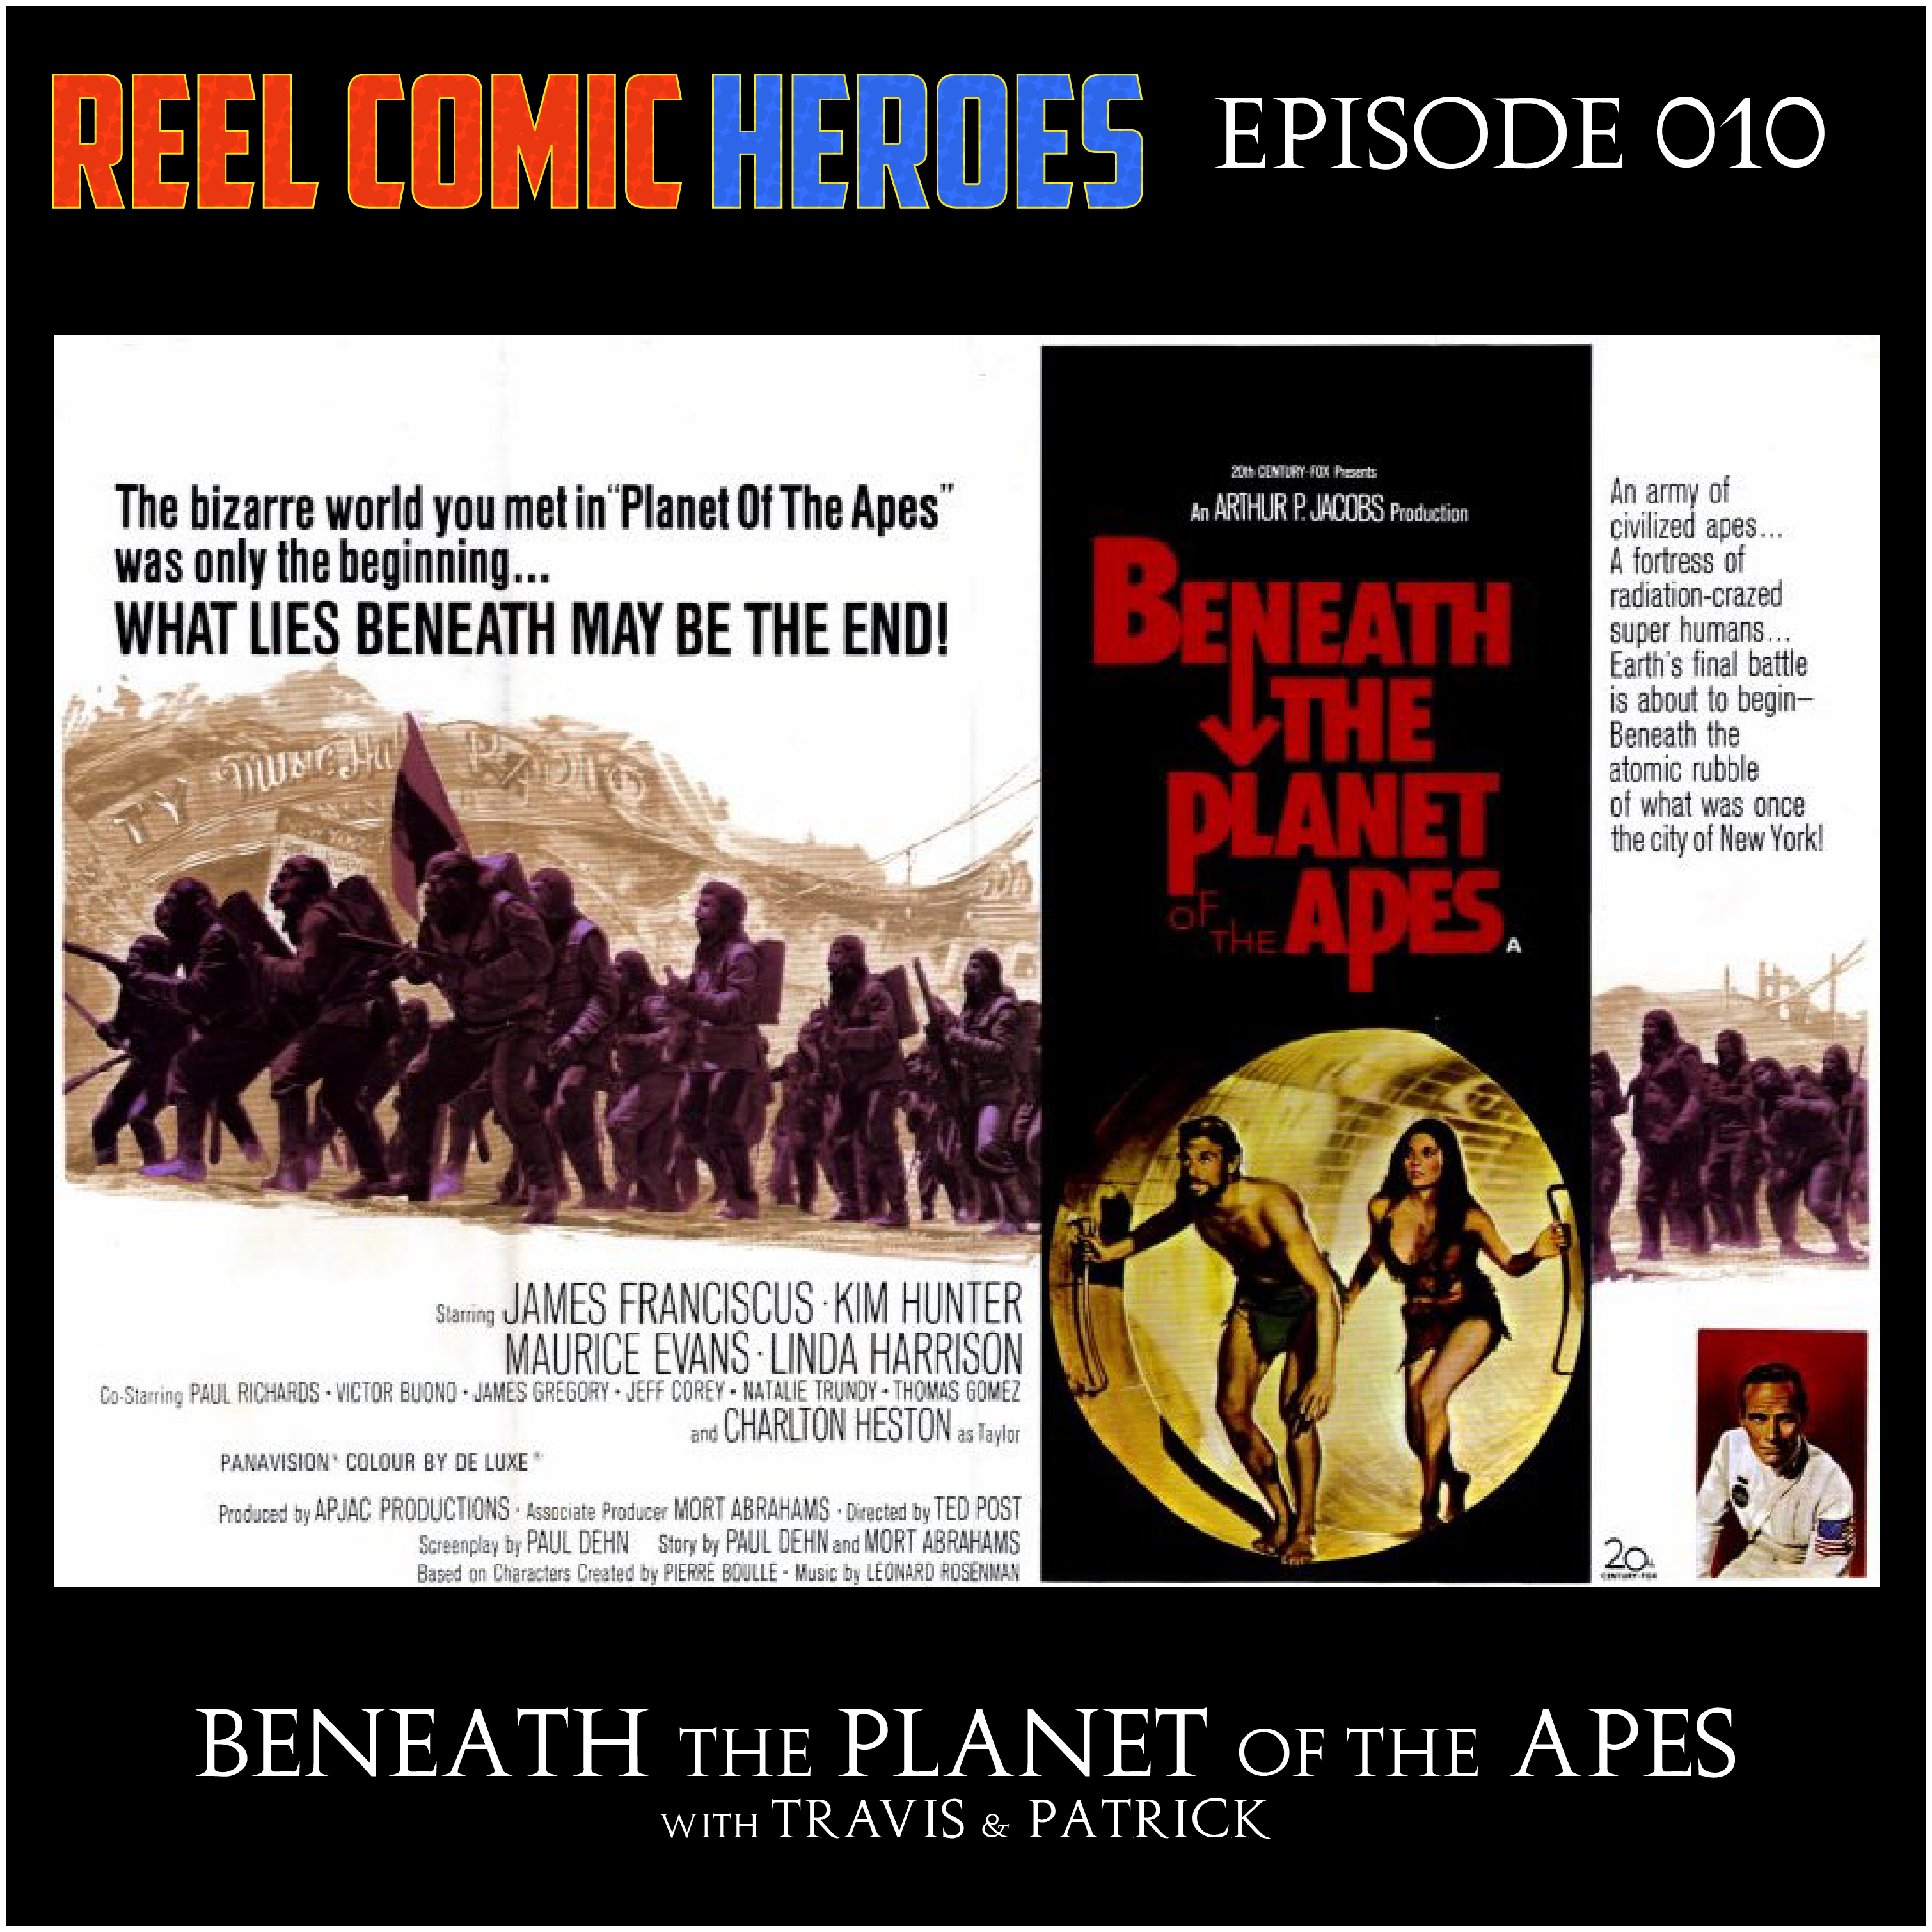 Artwork for Reel Comic Heroes 010 - Beneath the Planet of the Apes